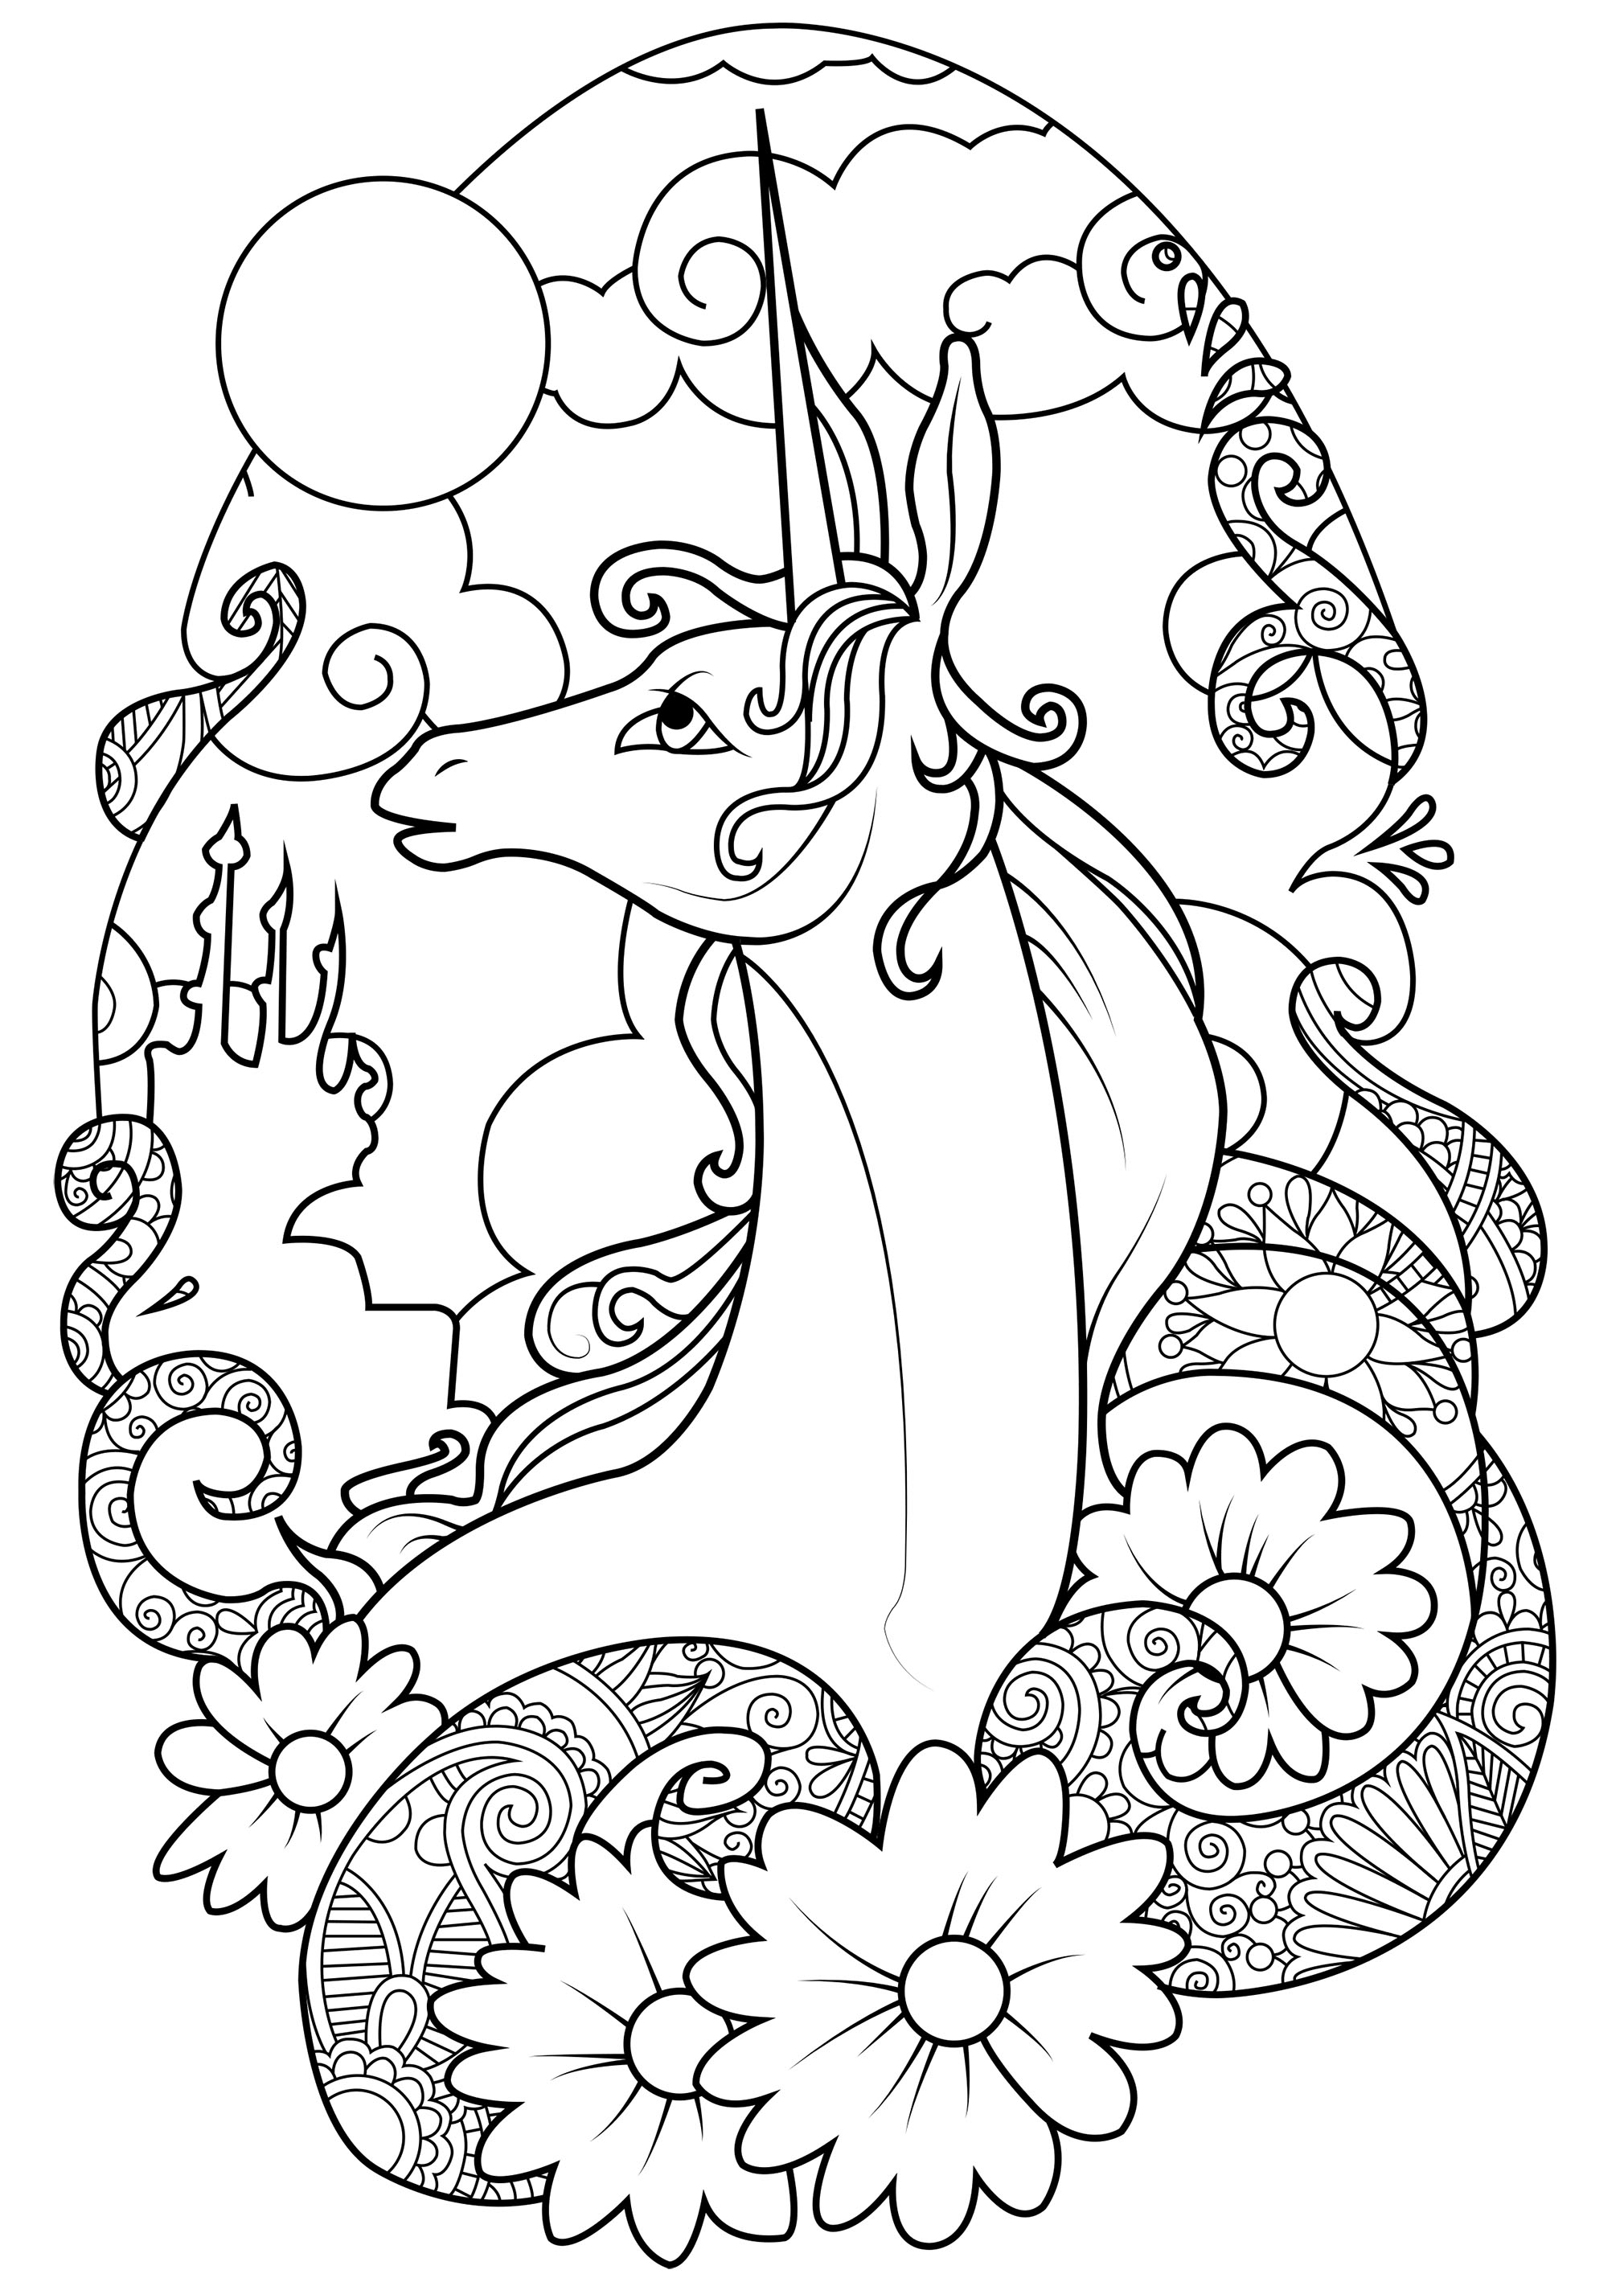 coloring for unicorn unicorns free to color for kids unicorns kids coloring pages coloring for unicorn